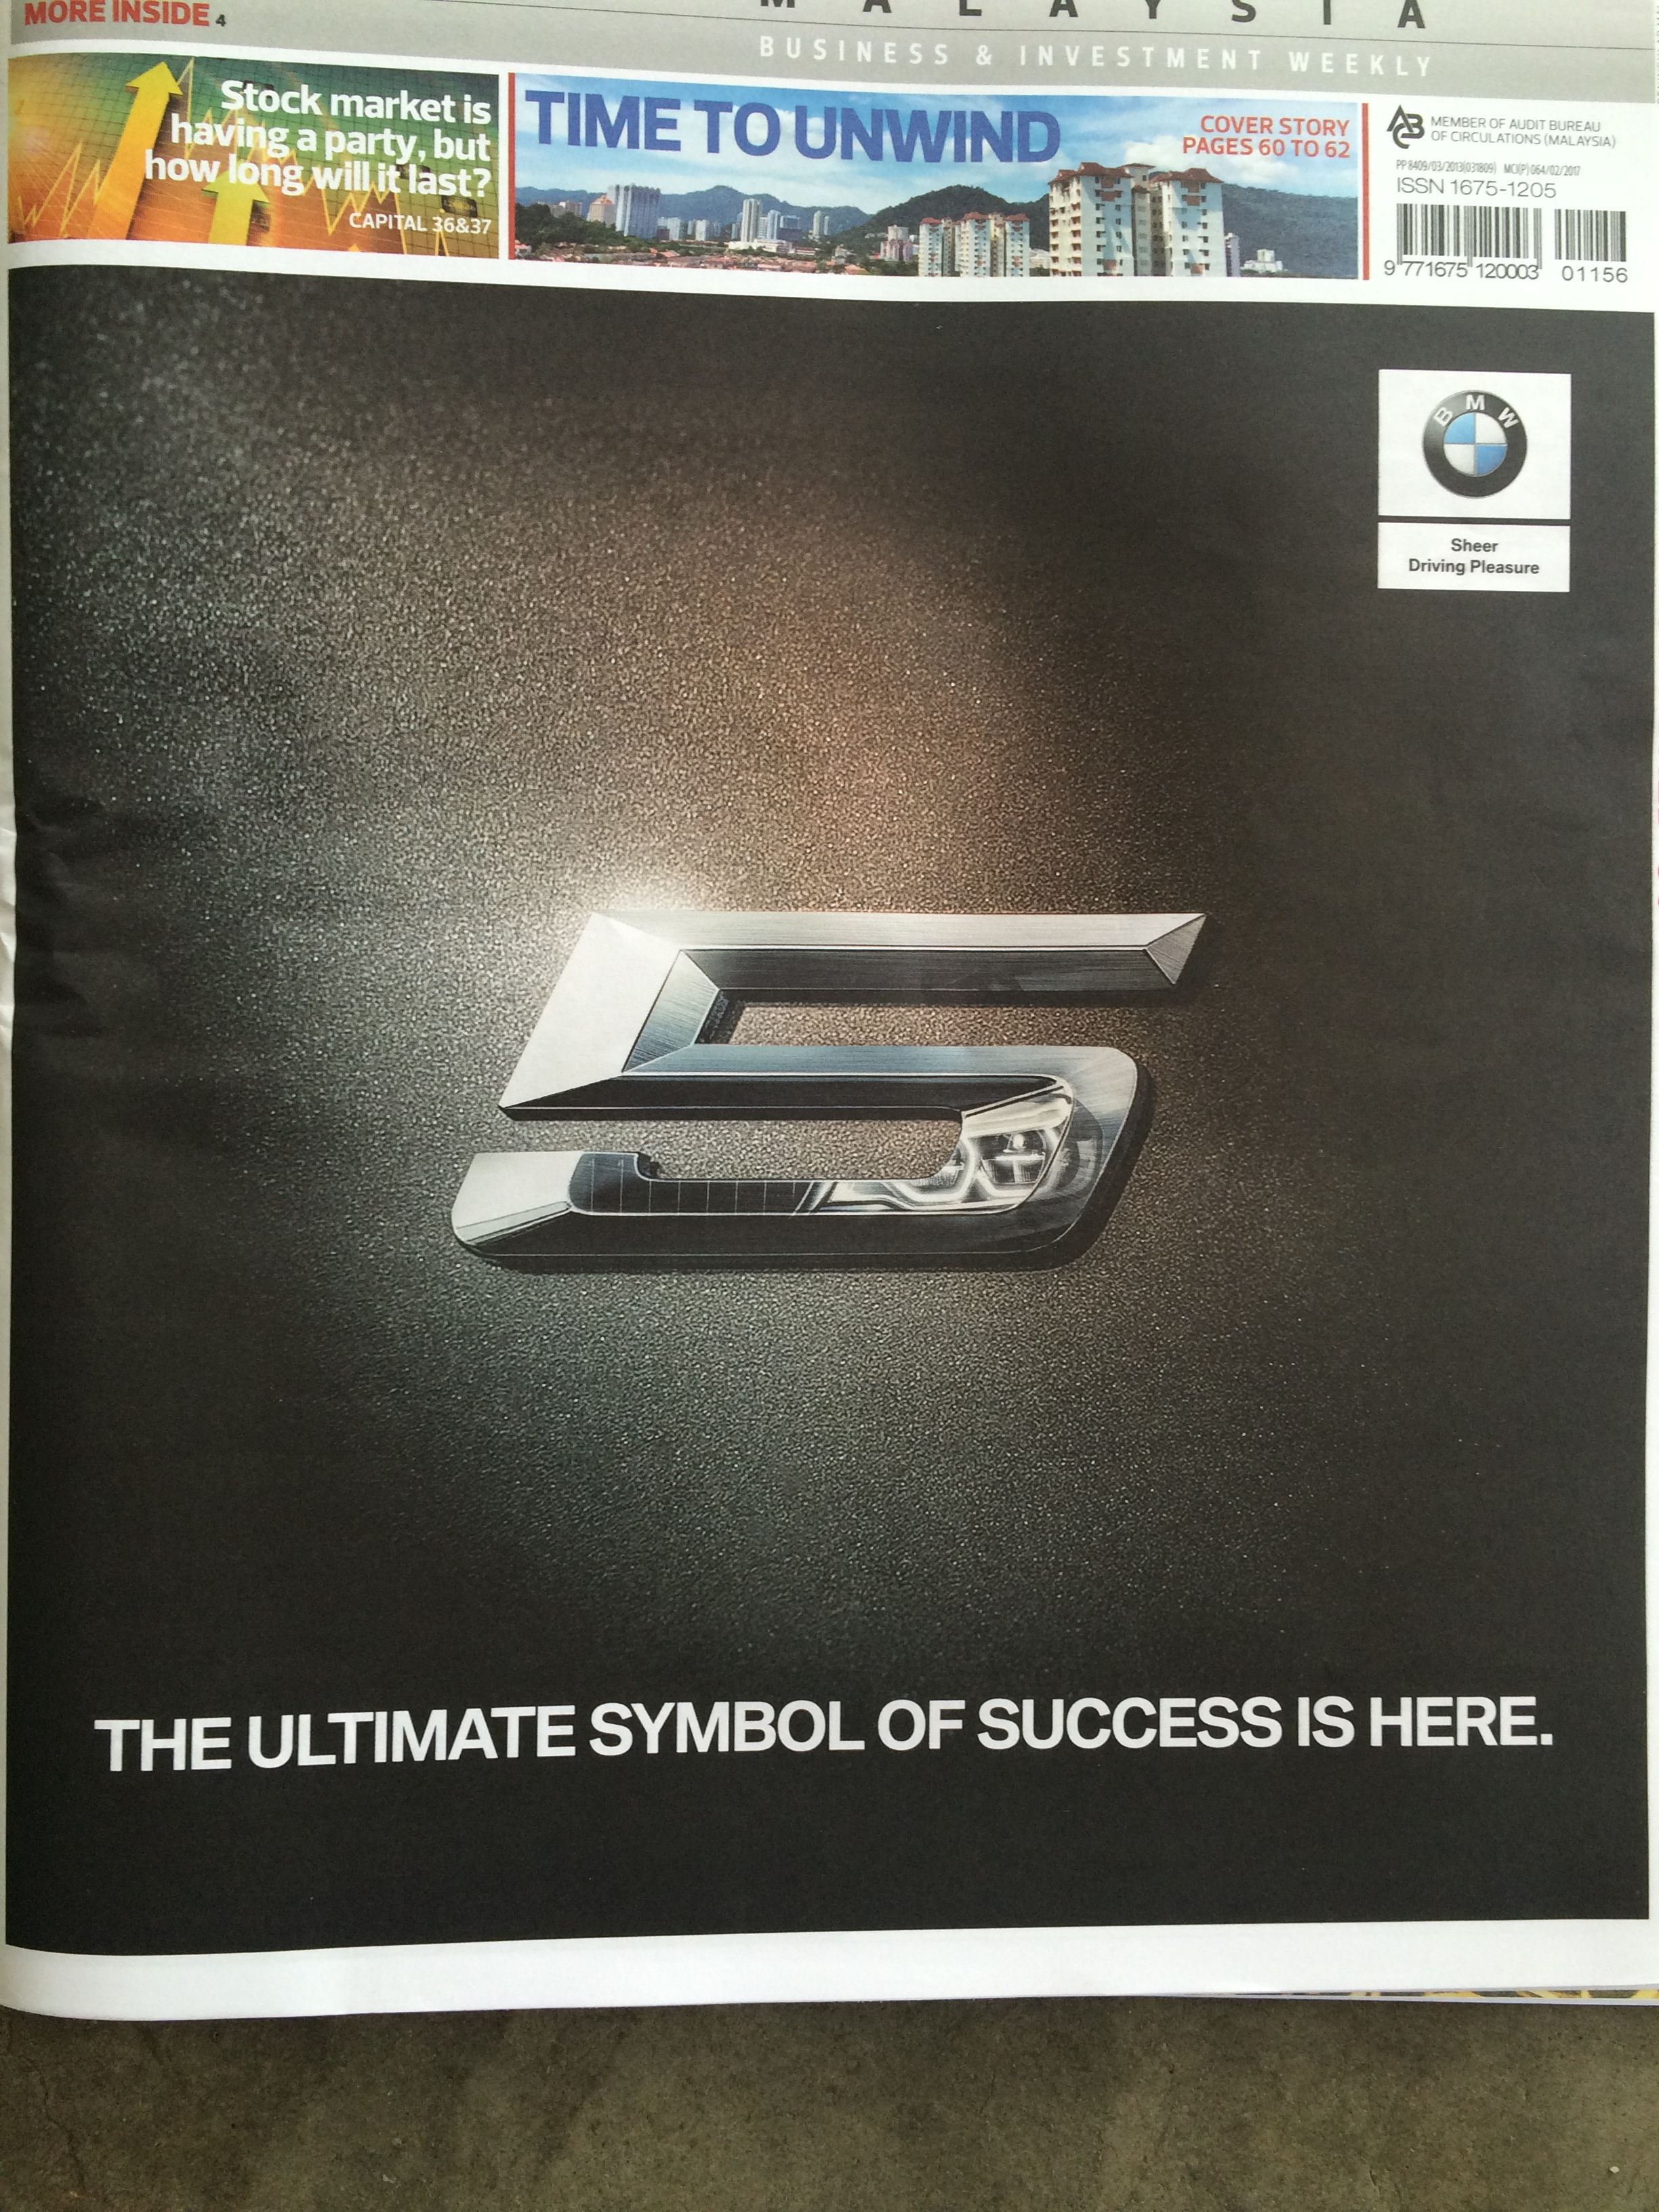 Bmw malaysia ads transport business investment bmw